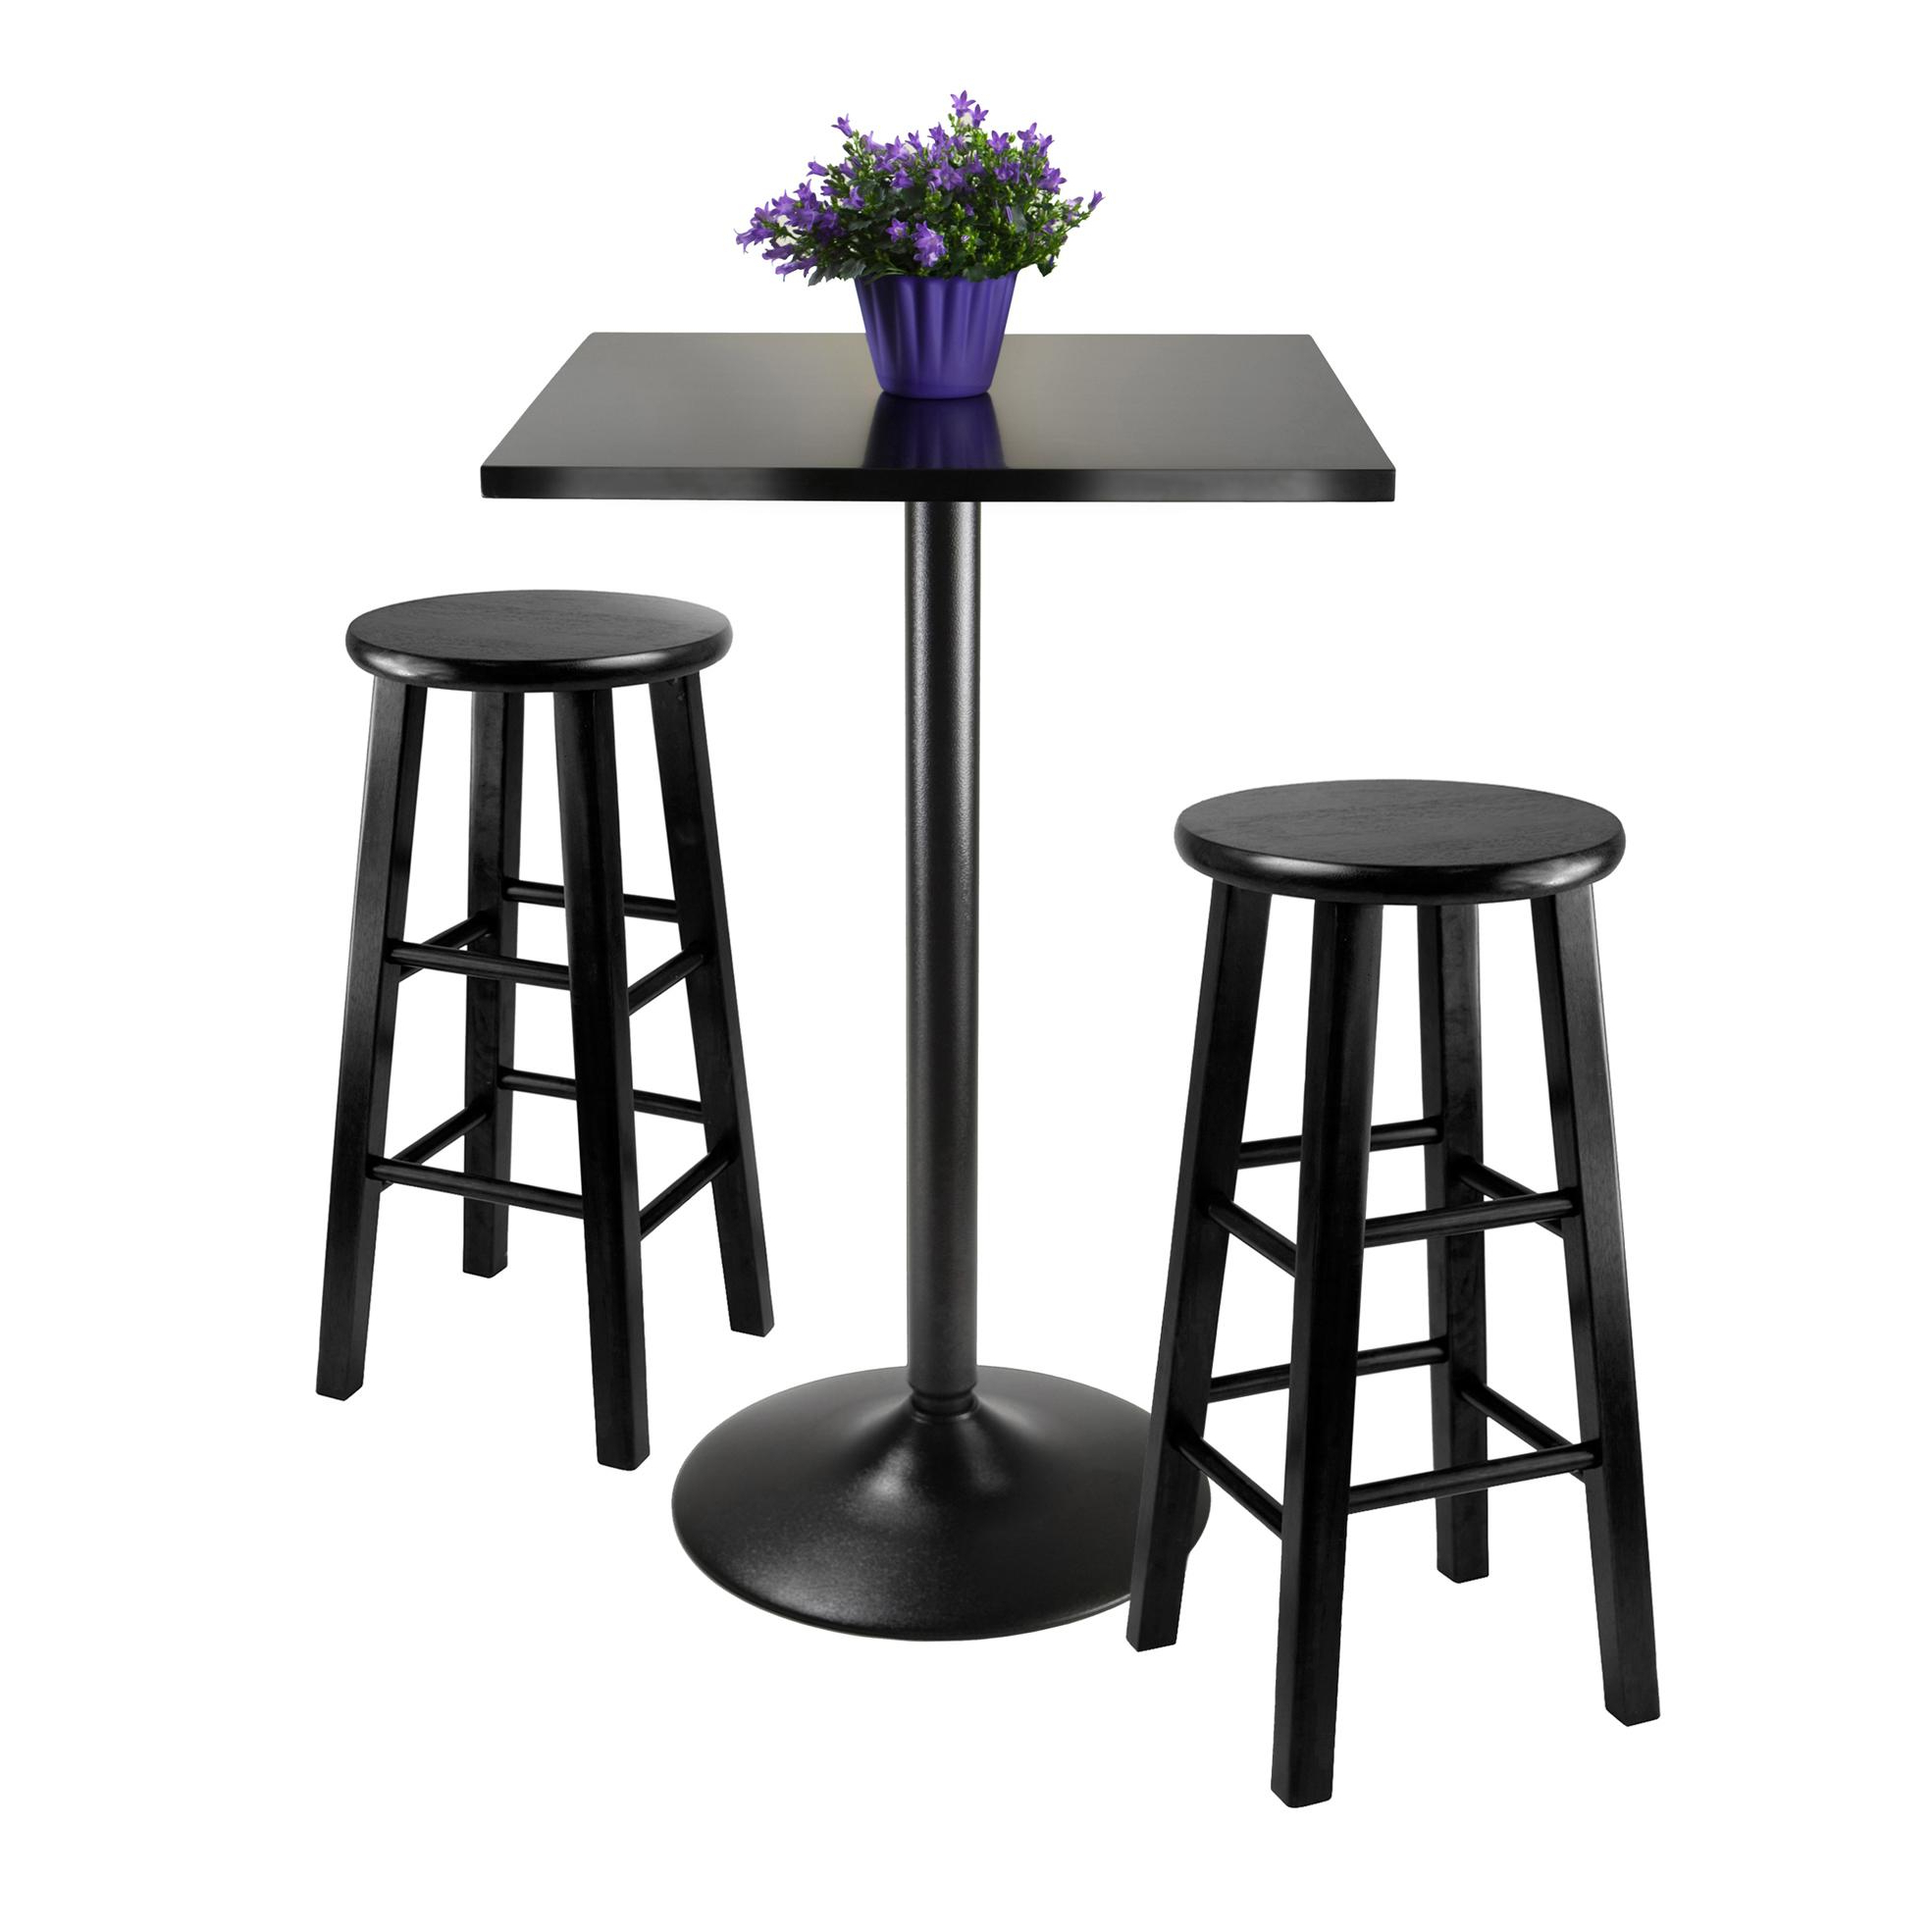 Winsome Obsidian 3 Piece Pub Table Set With Regard To Popular Winsome 3 Piece Counter Height Dining Sets (View 16 of 20)